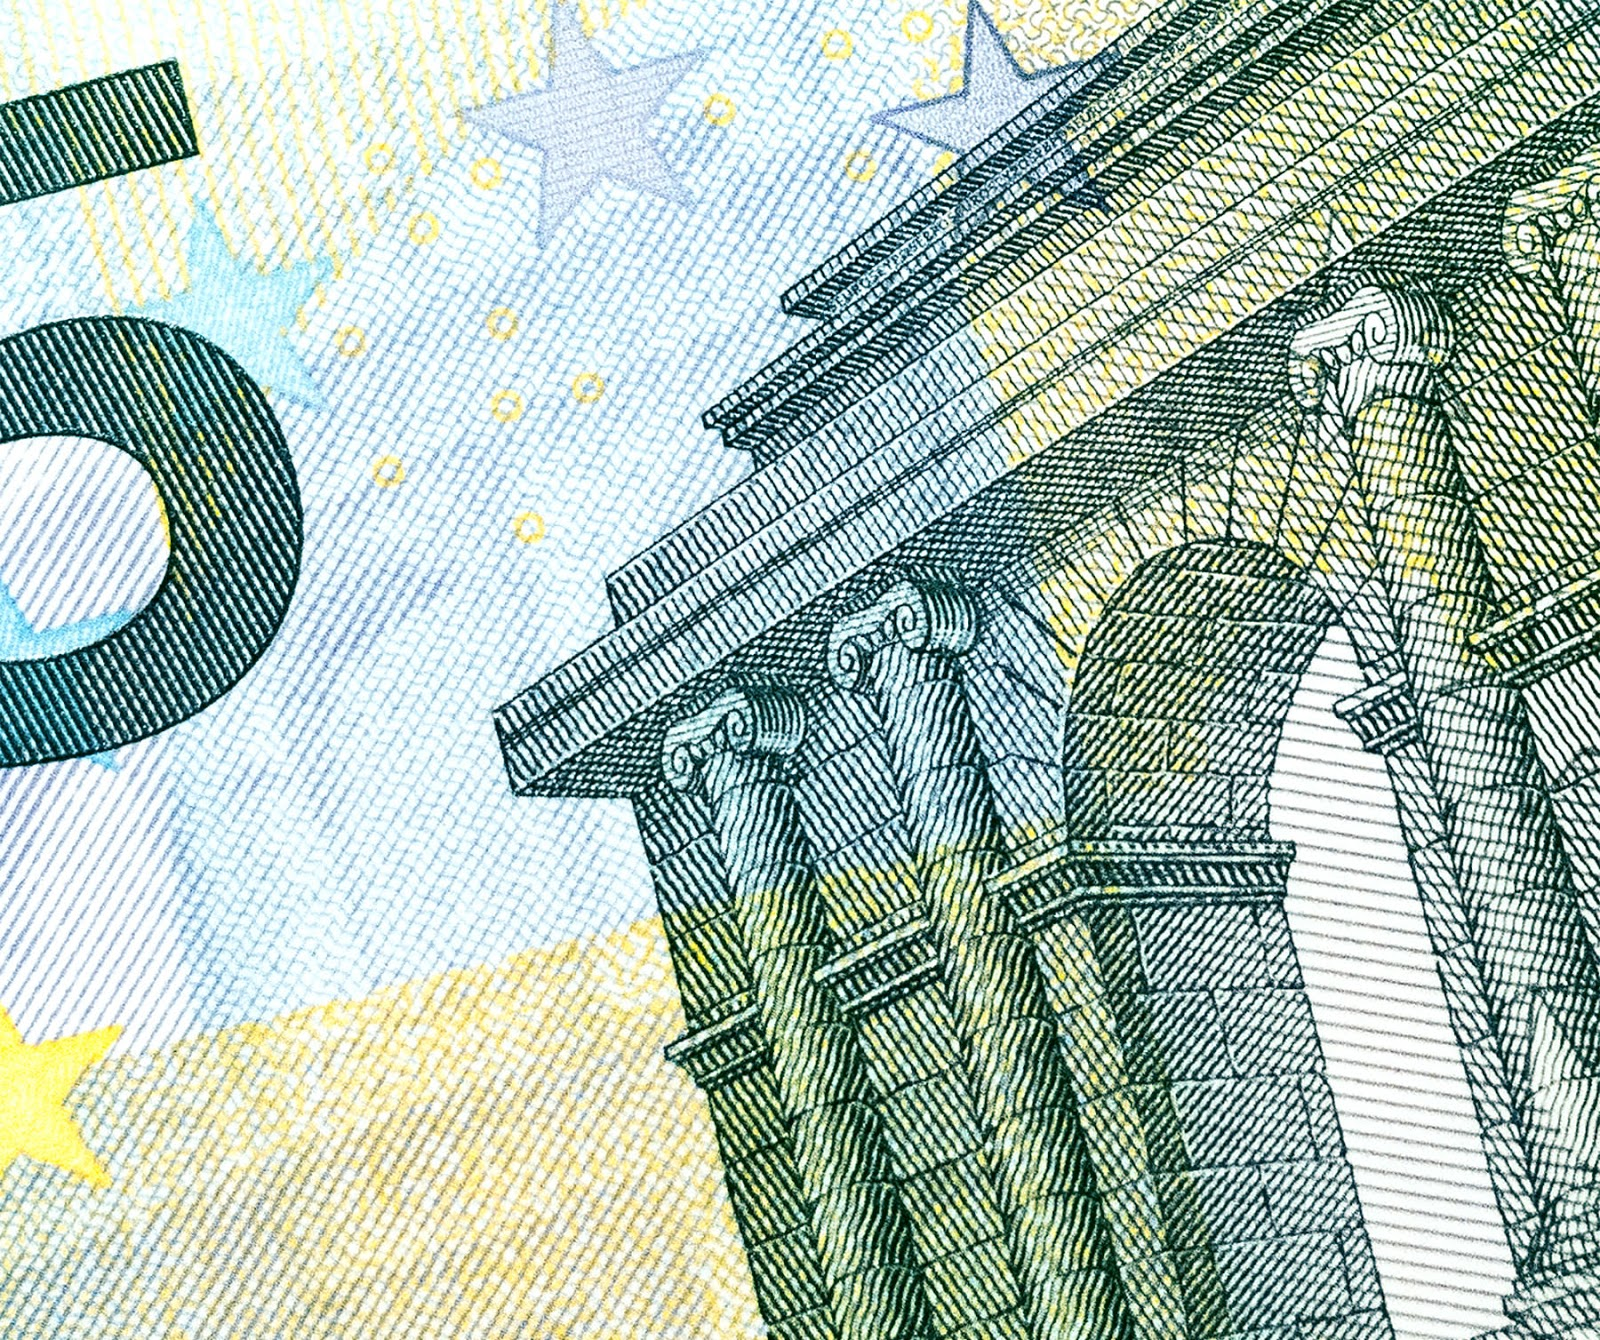 Section of a Euro banknote